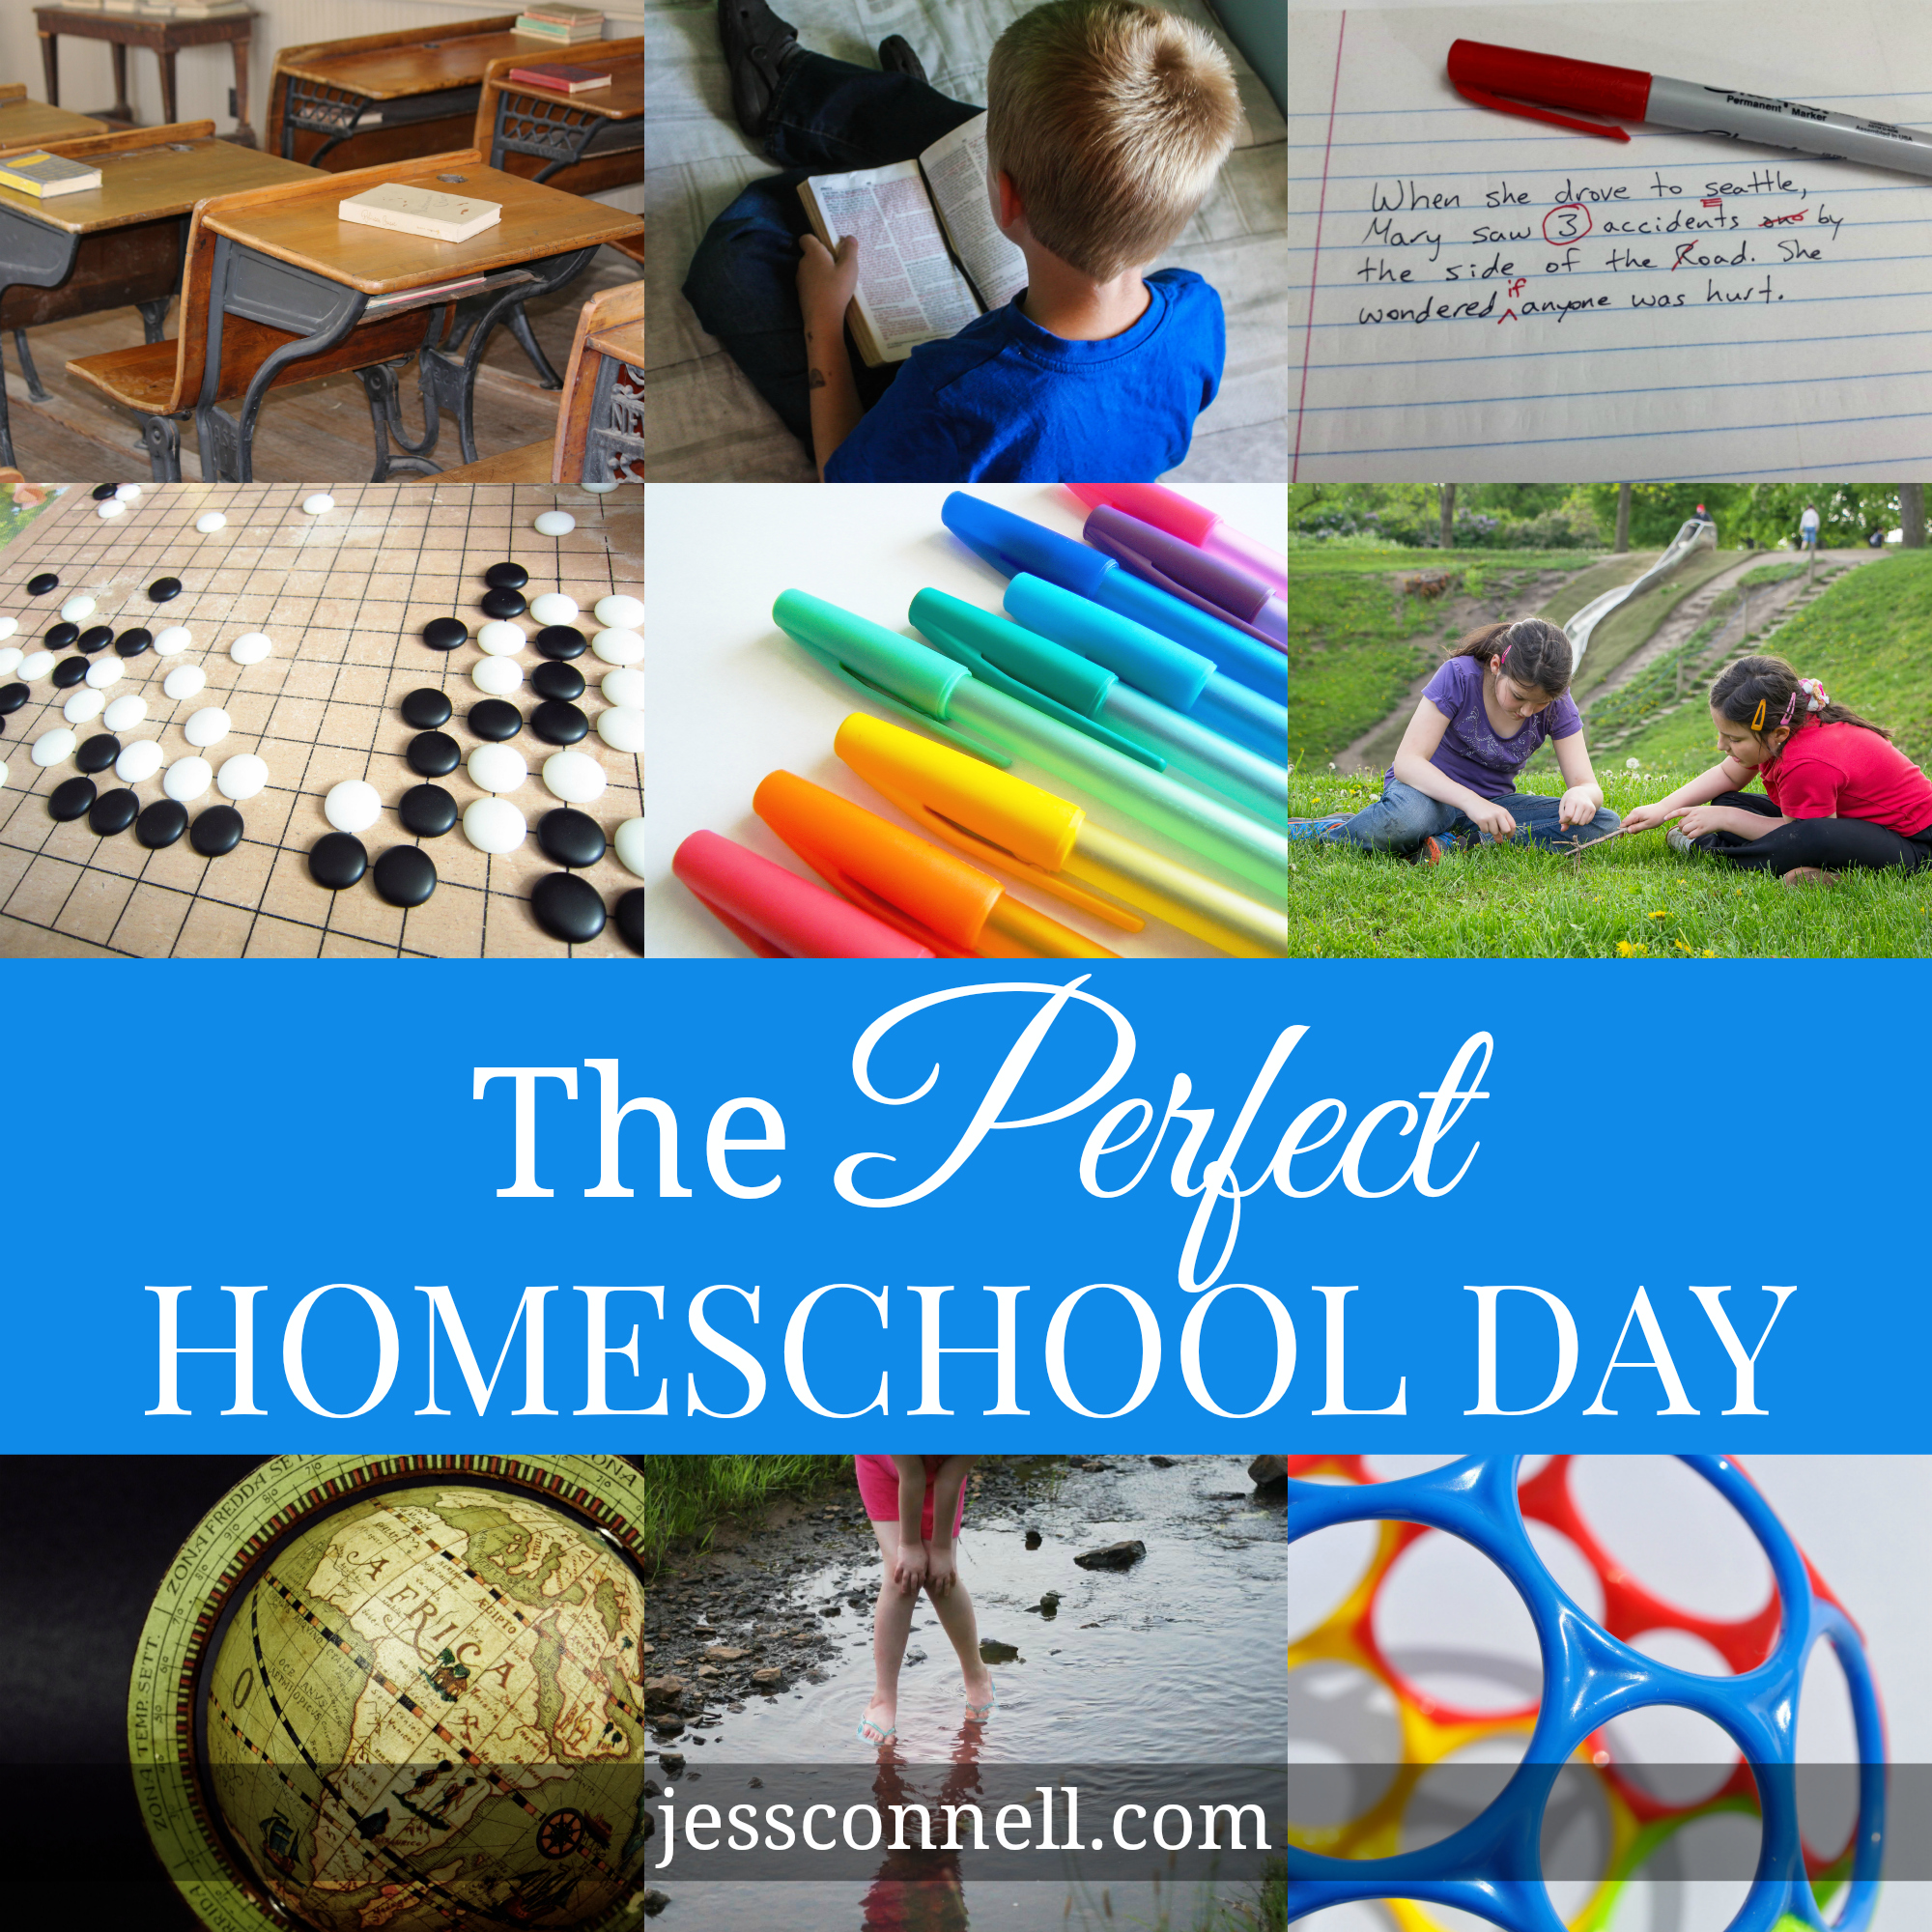 The Perfect Homeschool Day // jessconnell.com